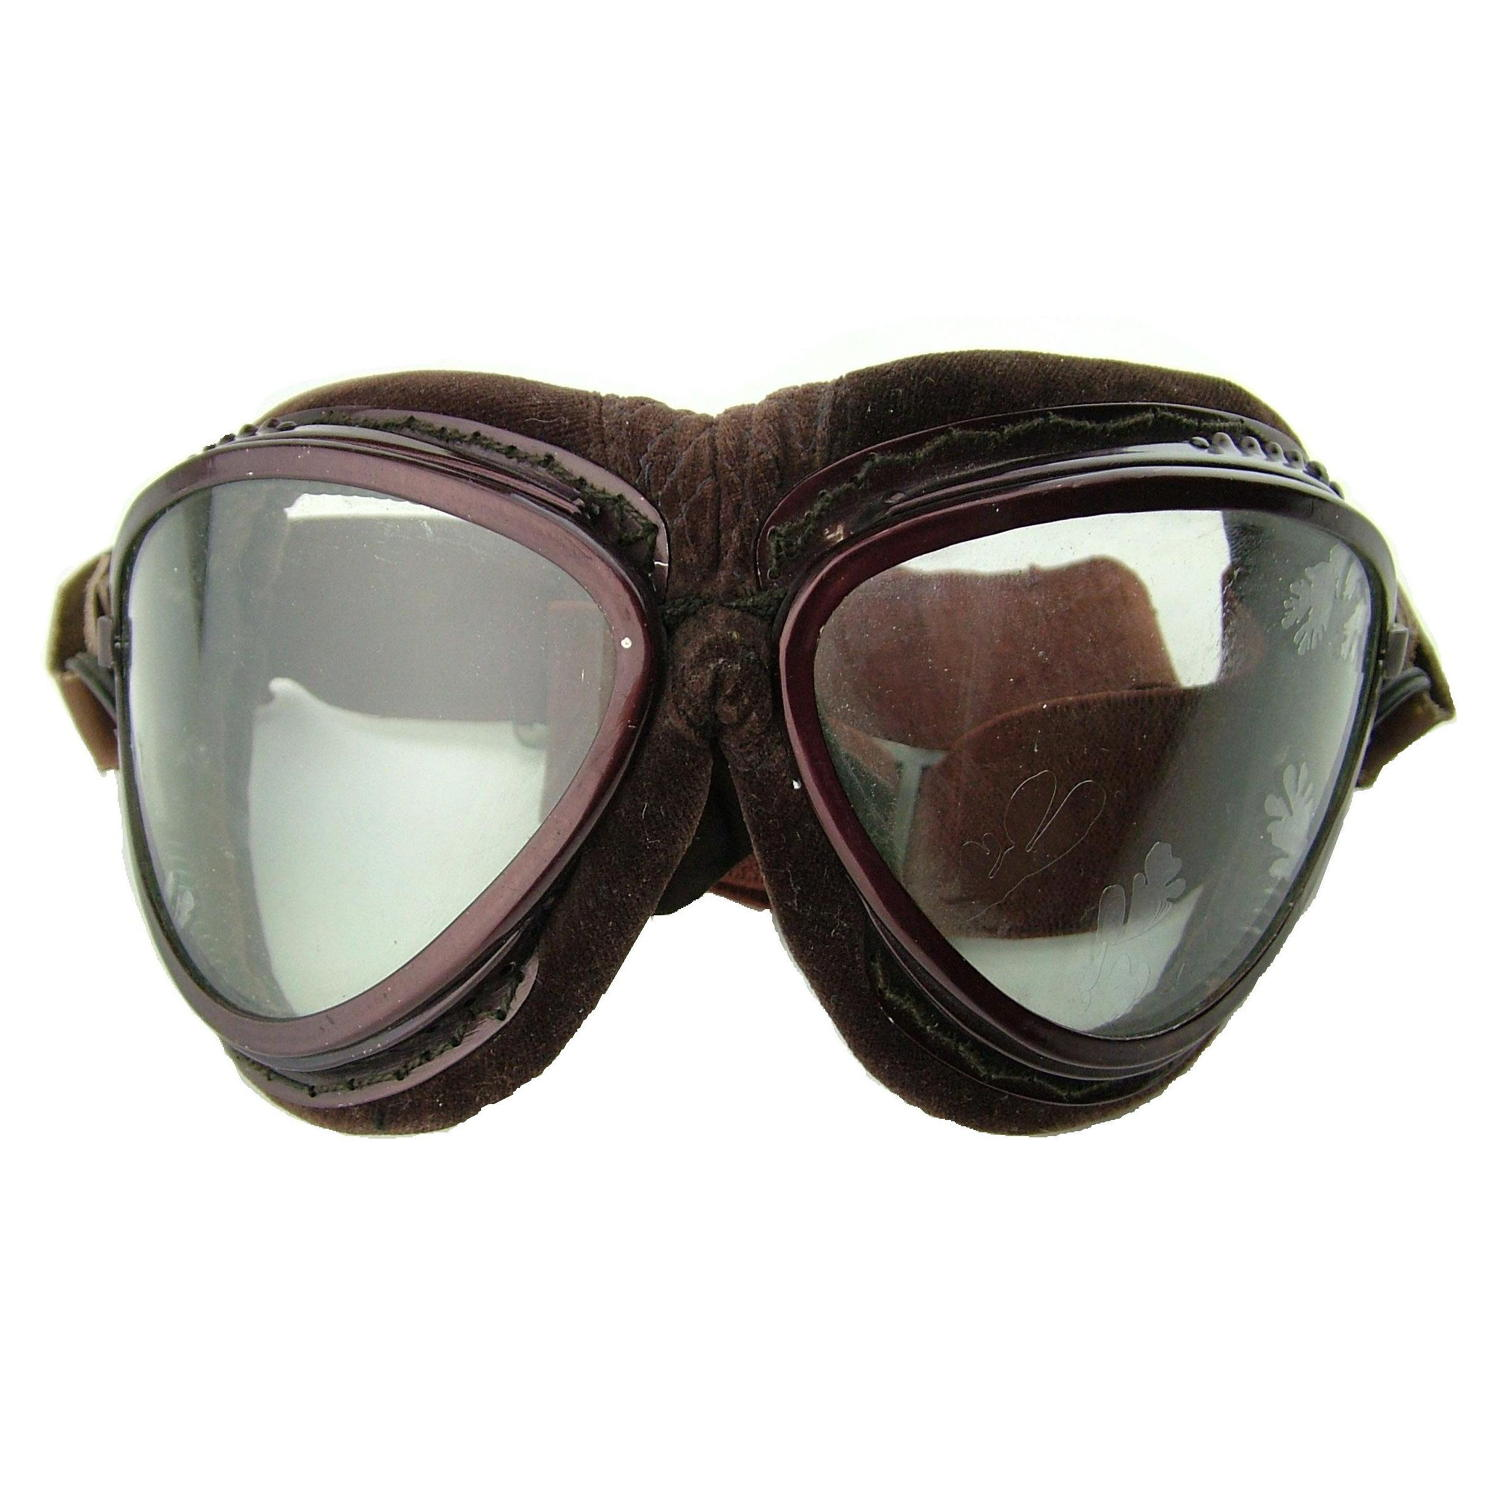 Imperial Japanese Navy flying goggles